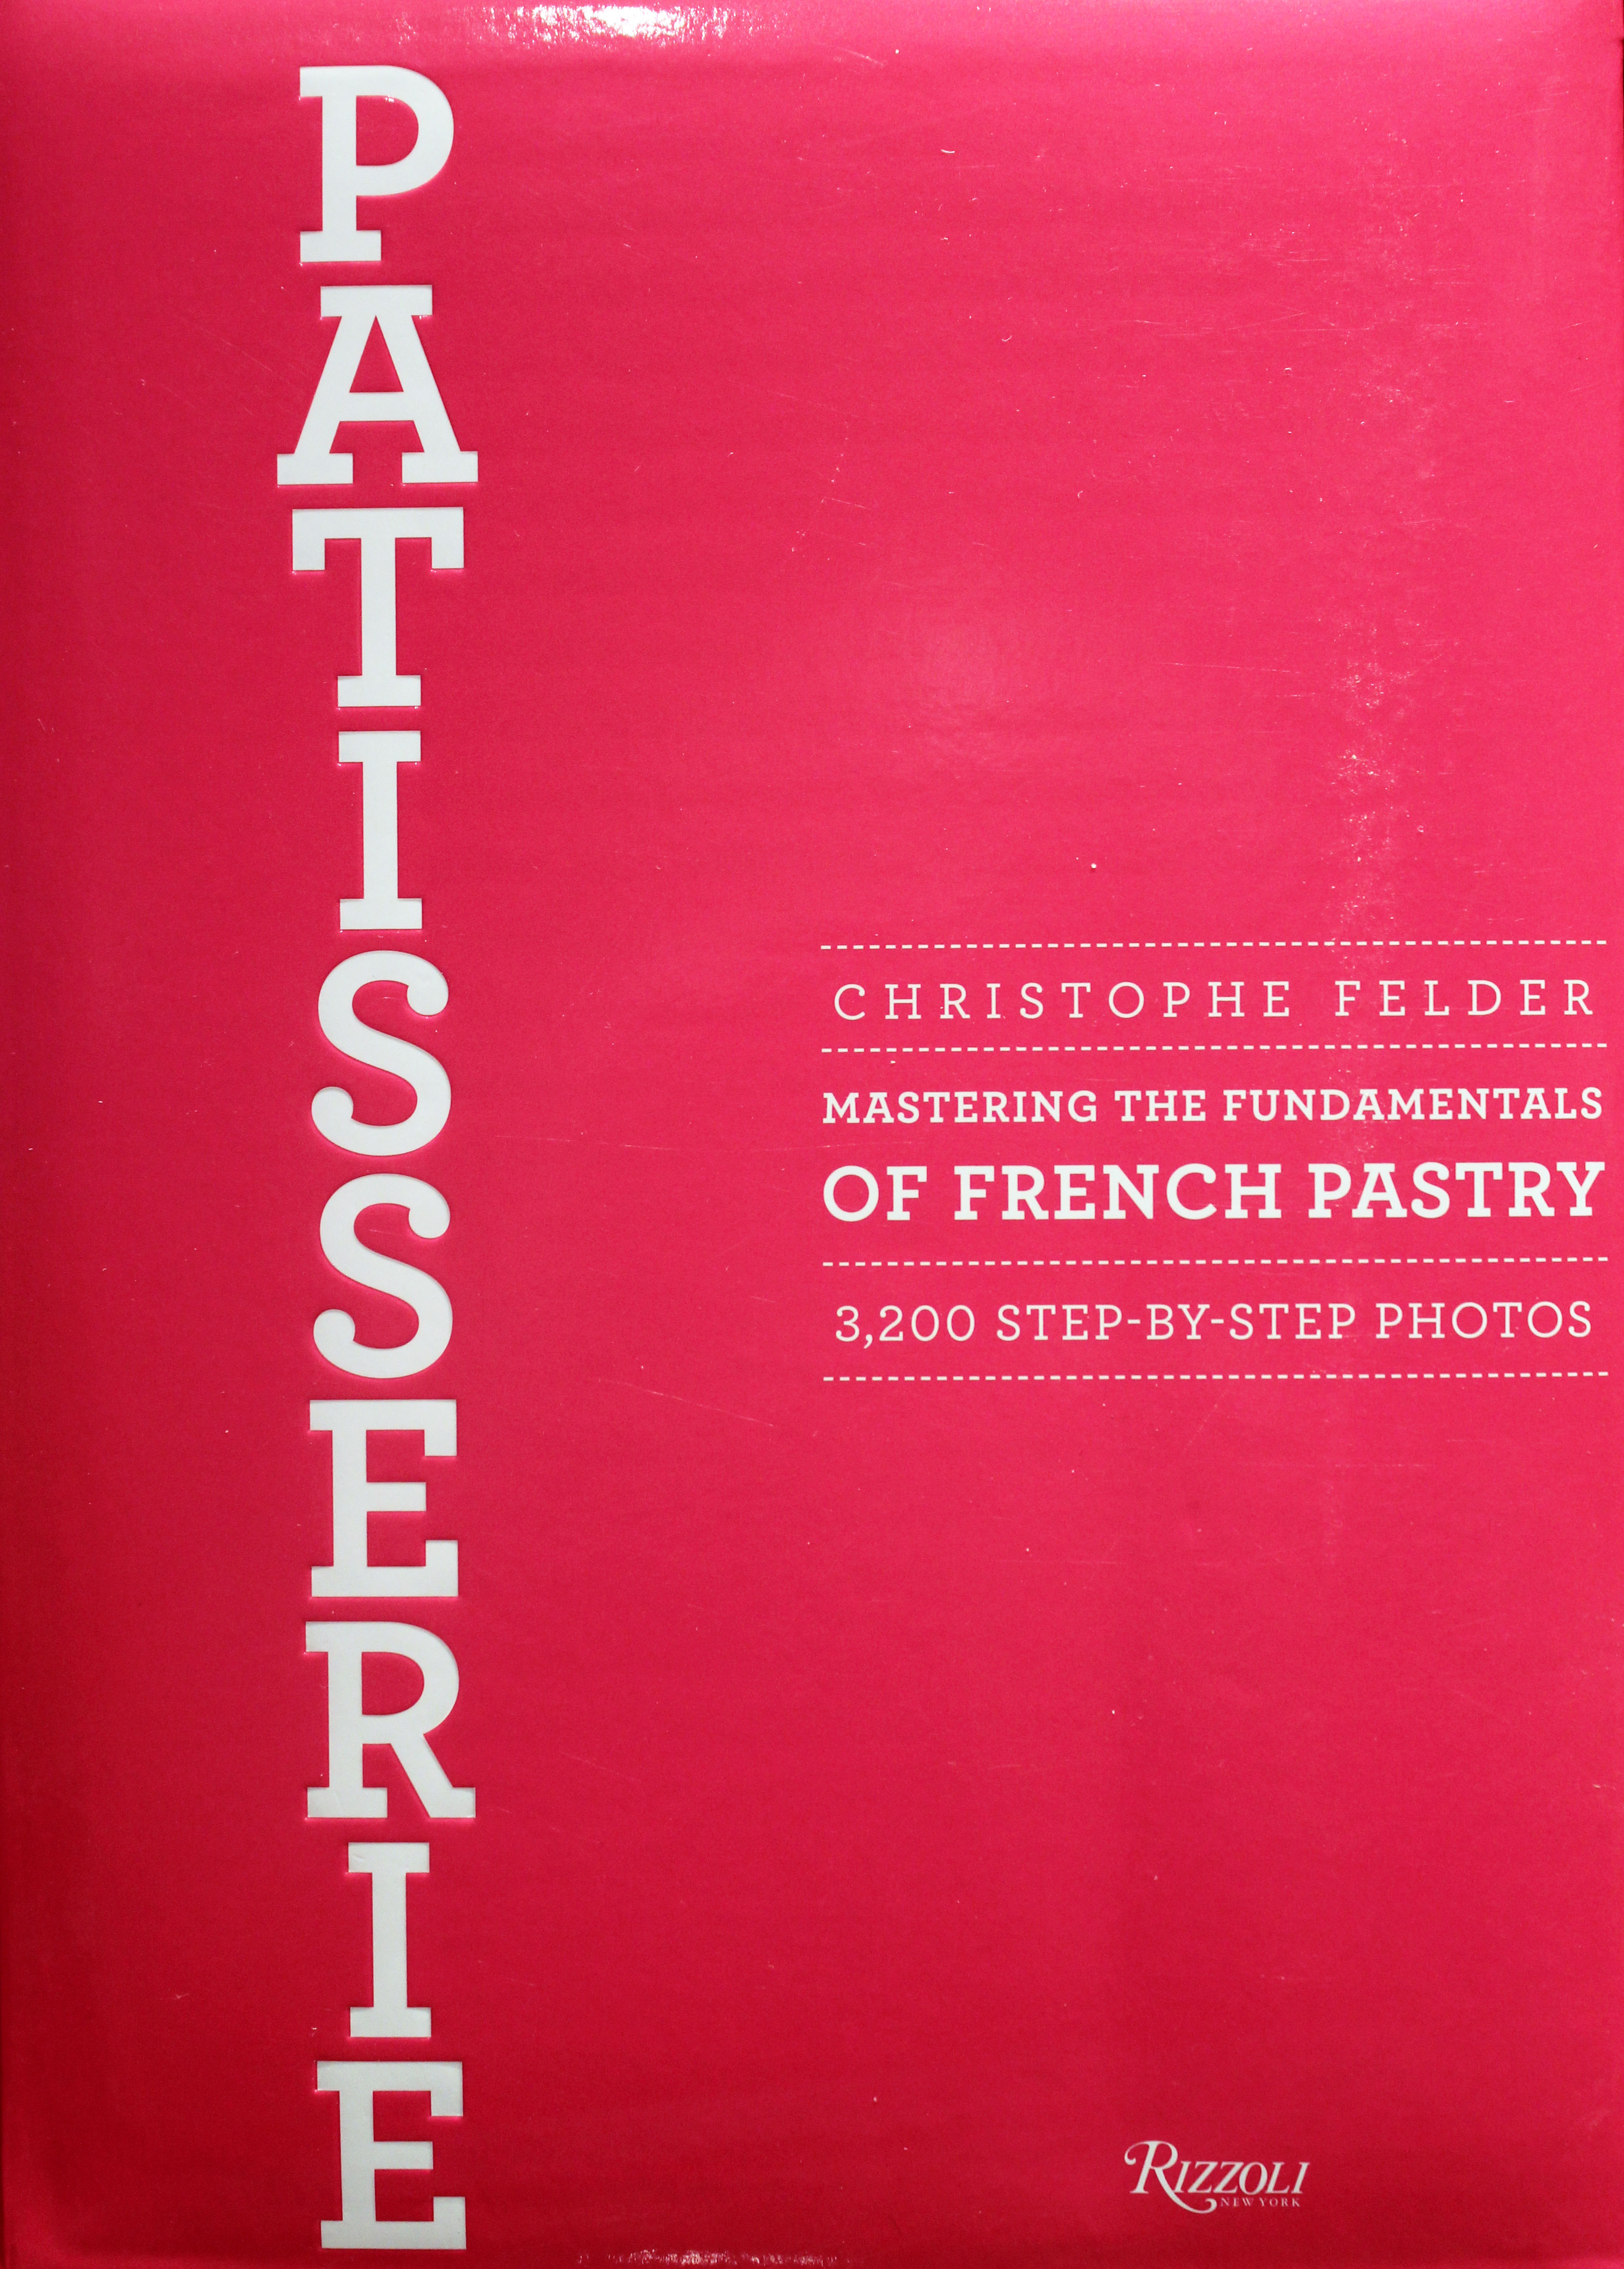 TBT Cookbook Review: Patisserie by Christophe Felder